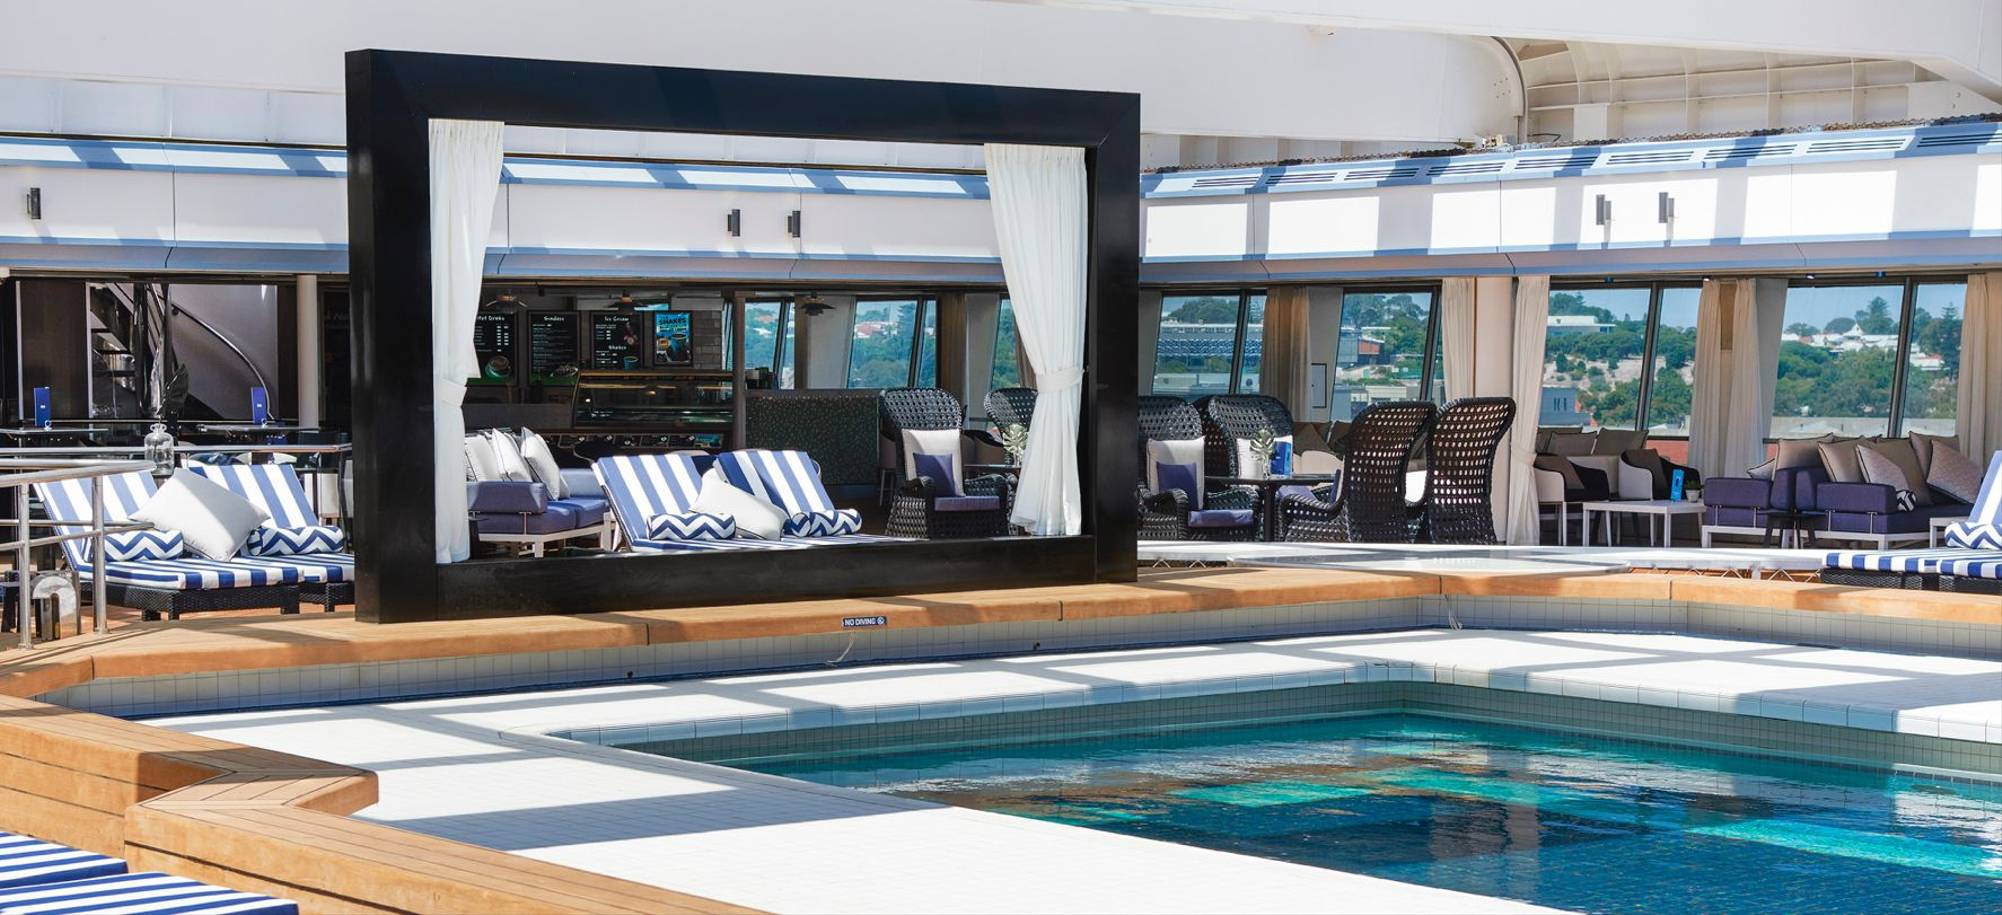 At Sea - Oasis Pool - Itinerary Desktop .jpg